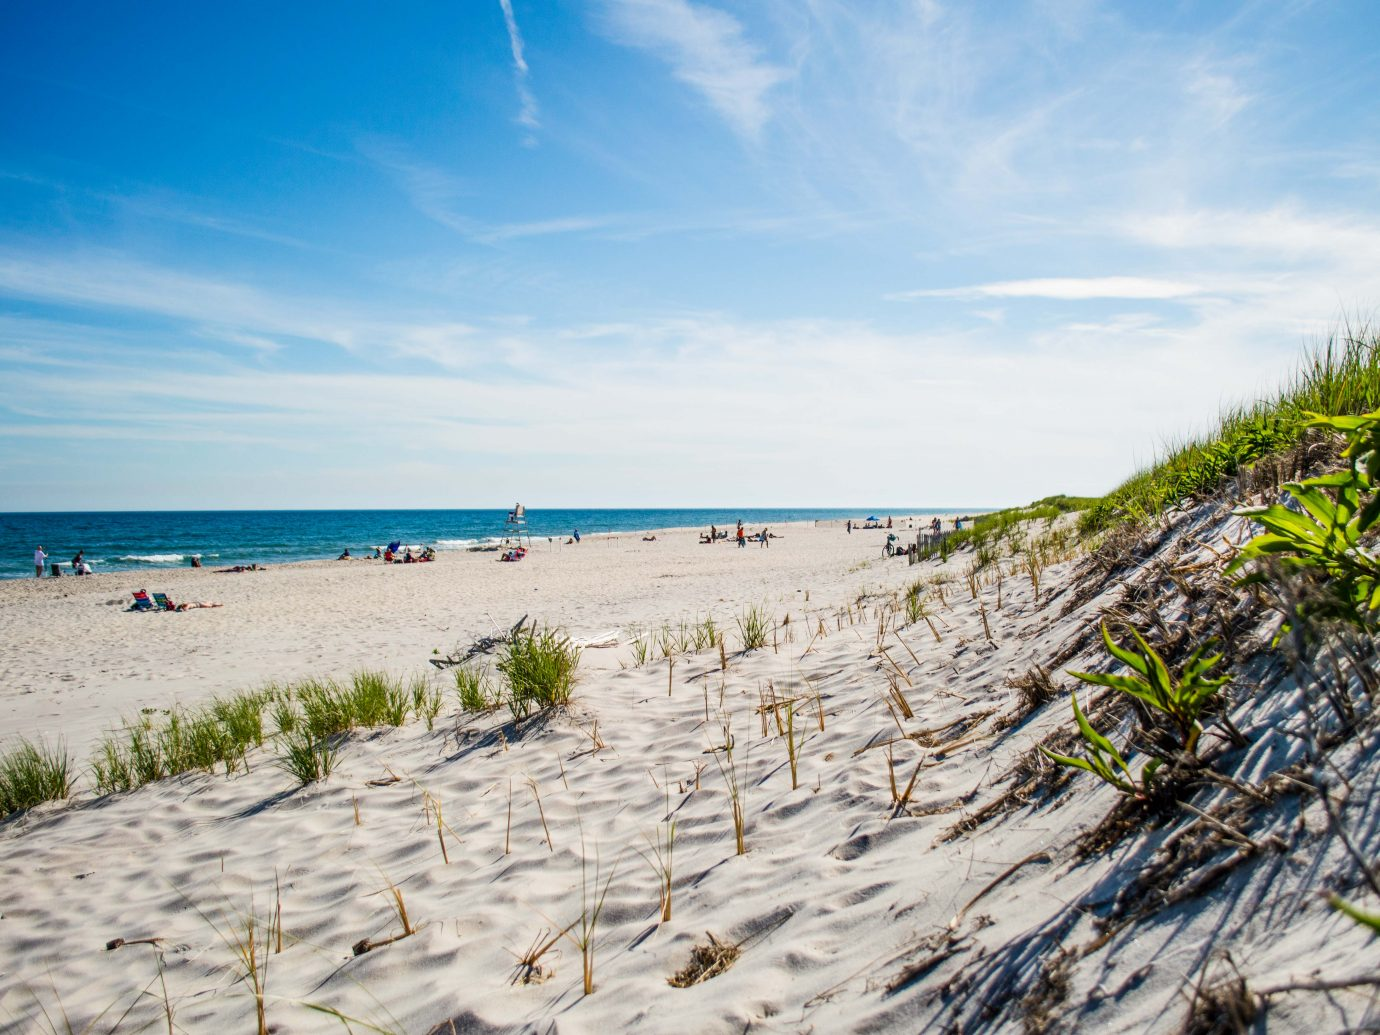 Where To Go In The Hamptons Based On